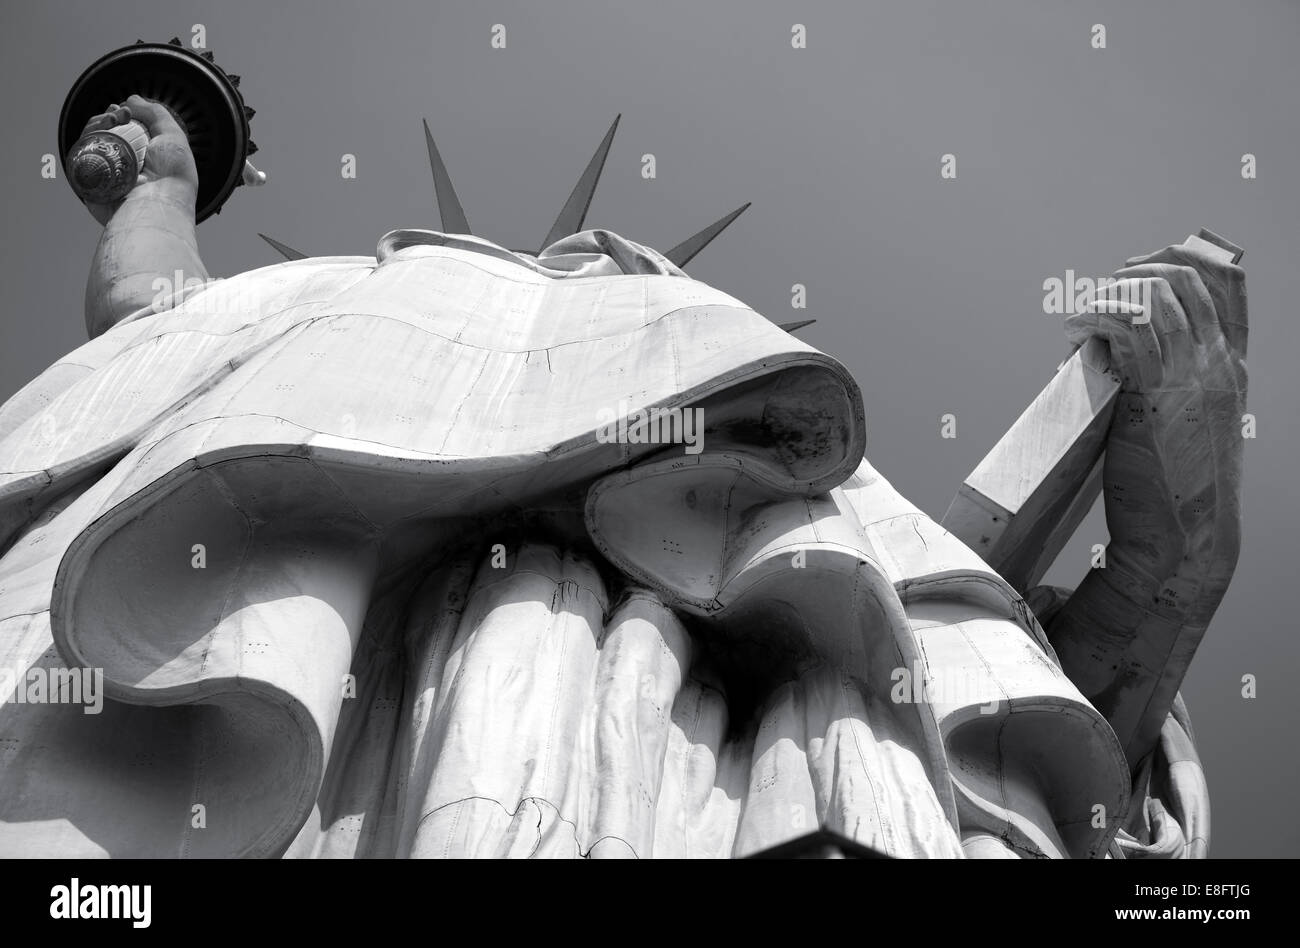 USA, New York State, New York City, Statue of Liberty viewed from below - Stock Image